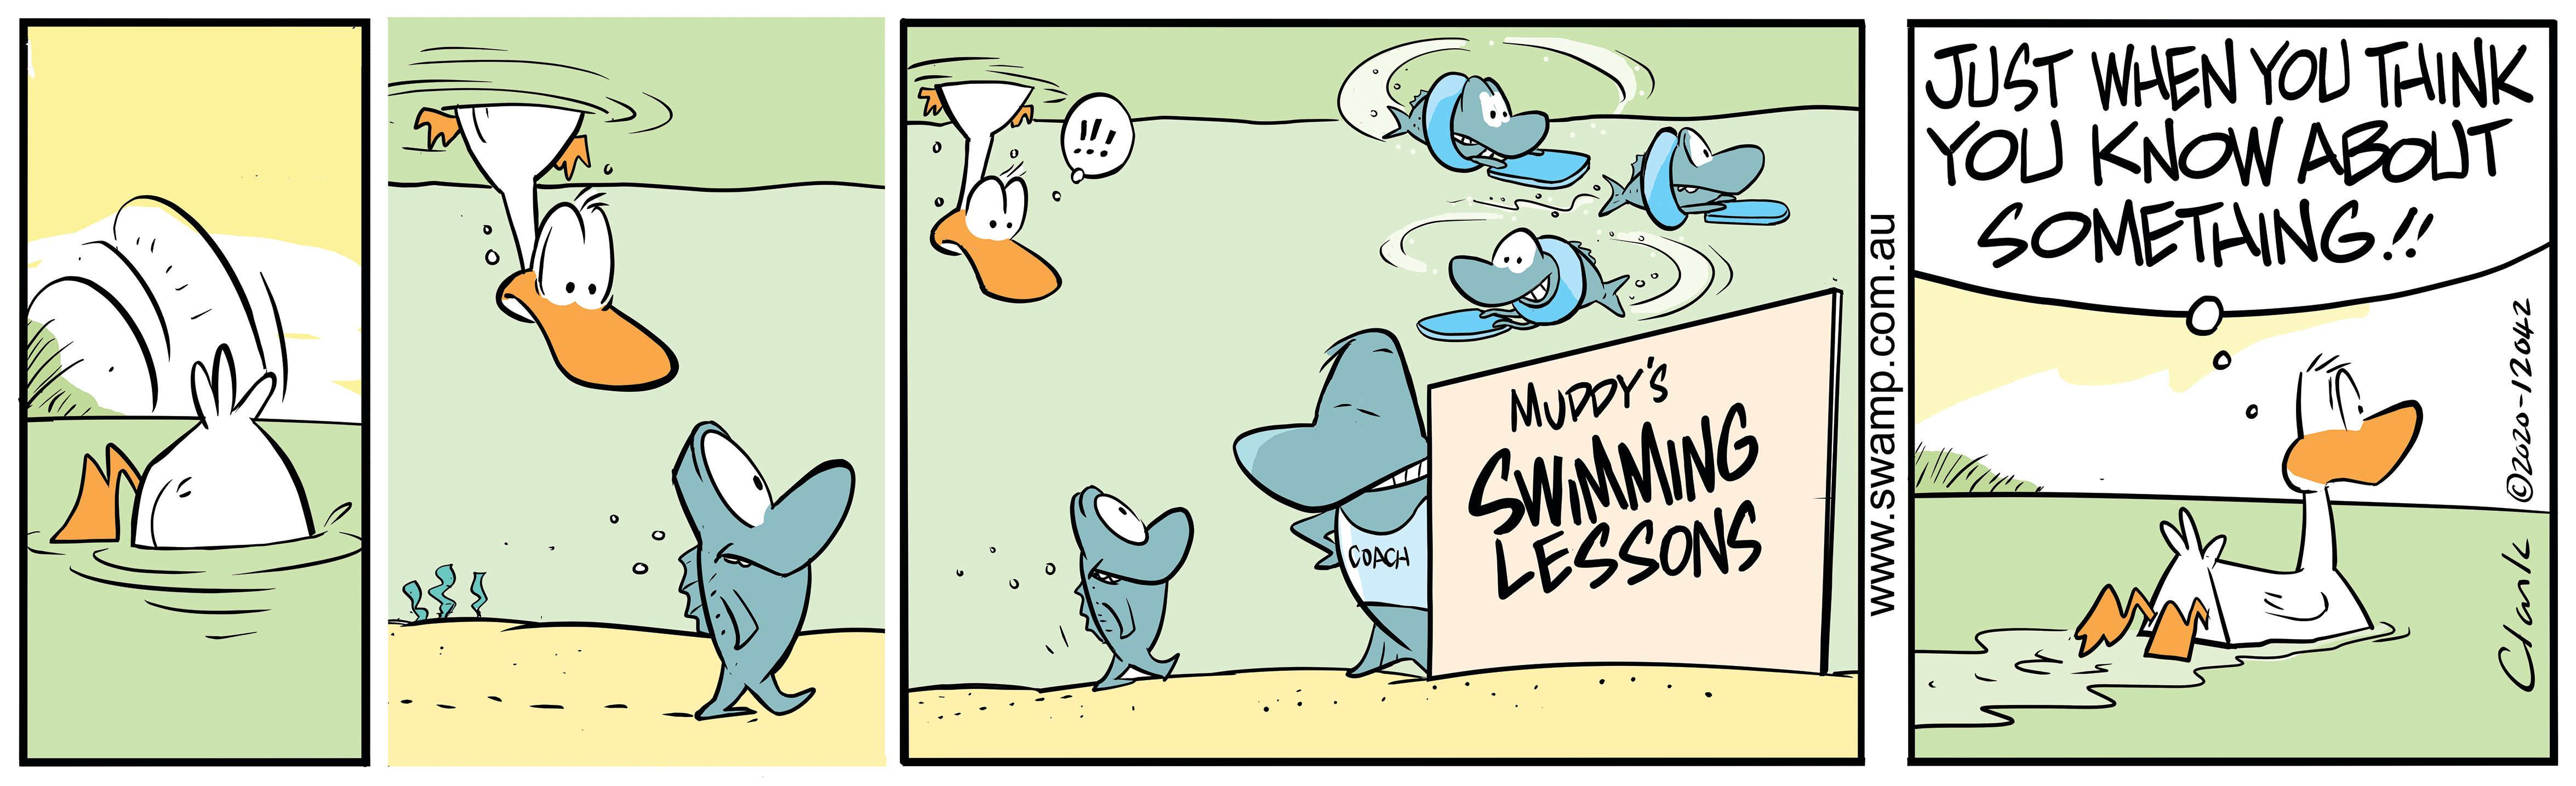 Muddy's Swimming Lessons